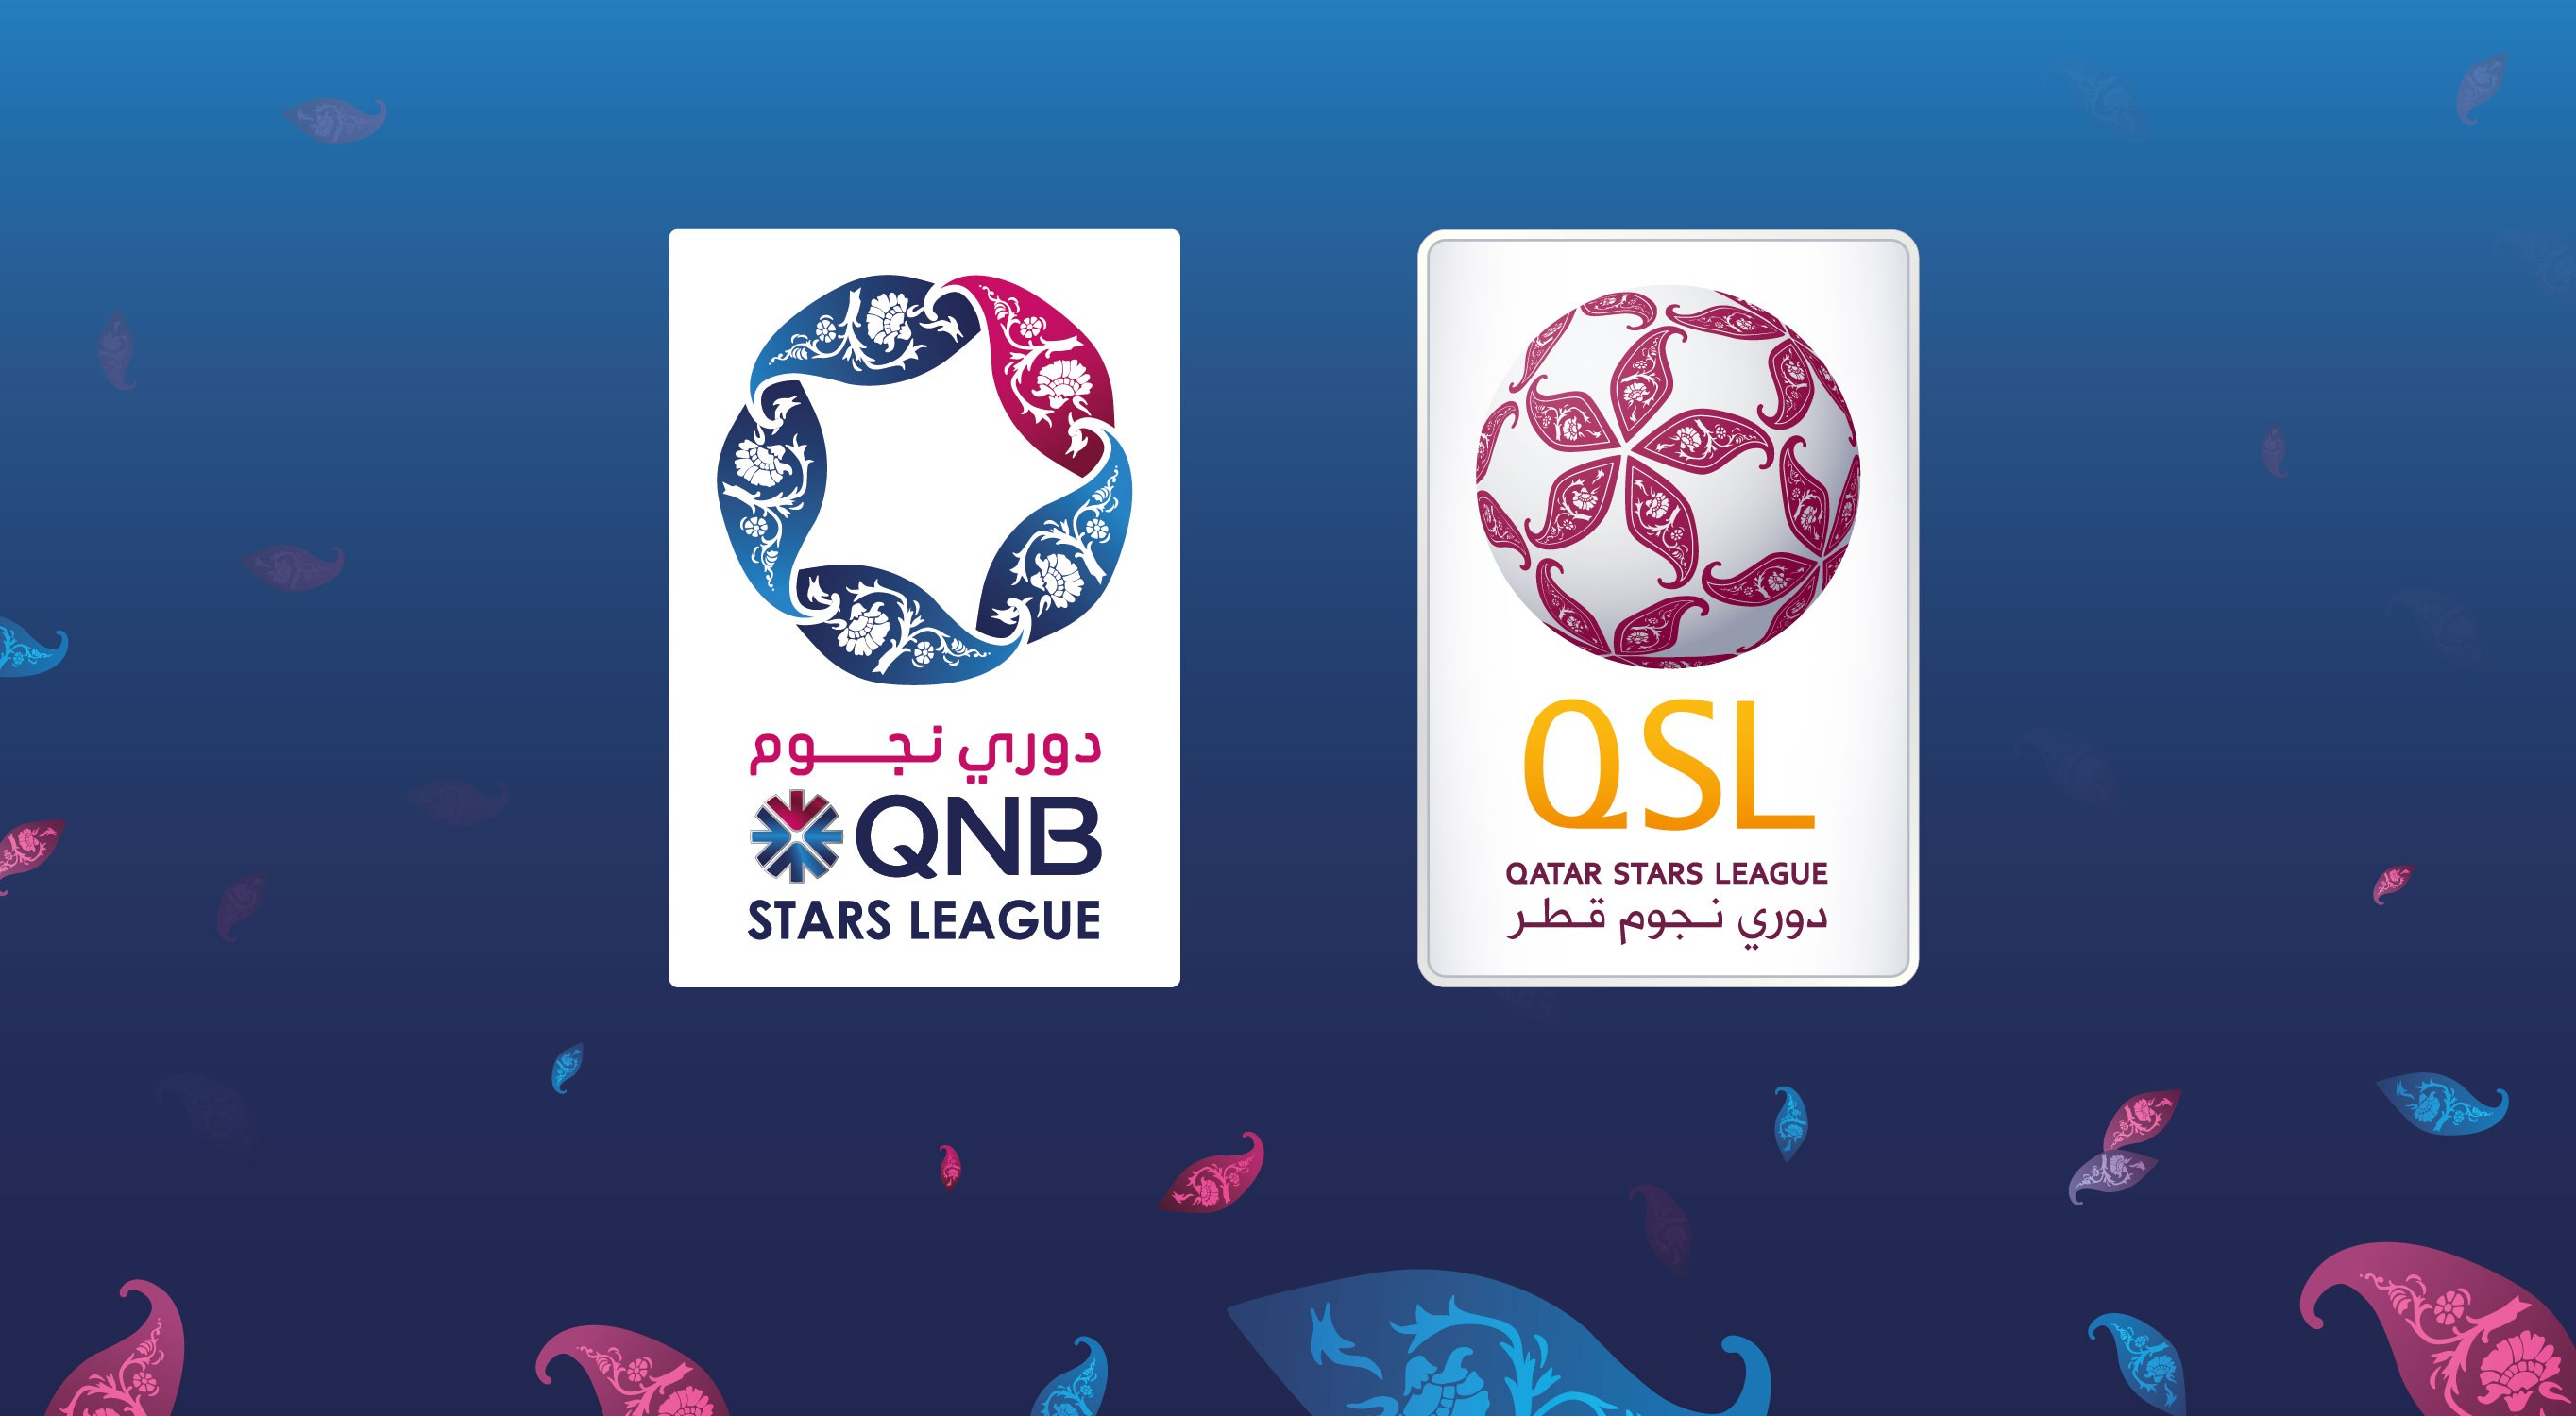 QSL releases details of first phase of 2019-2020 season